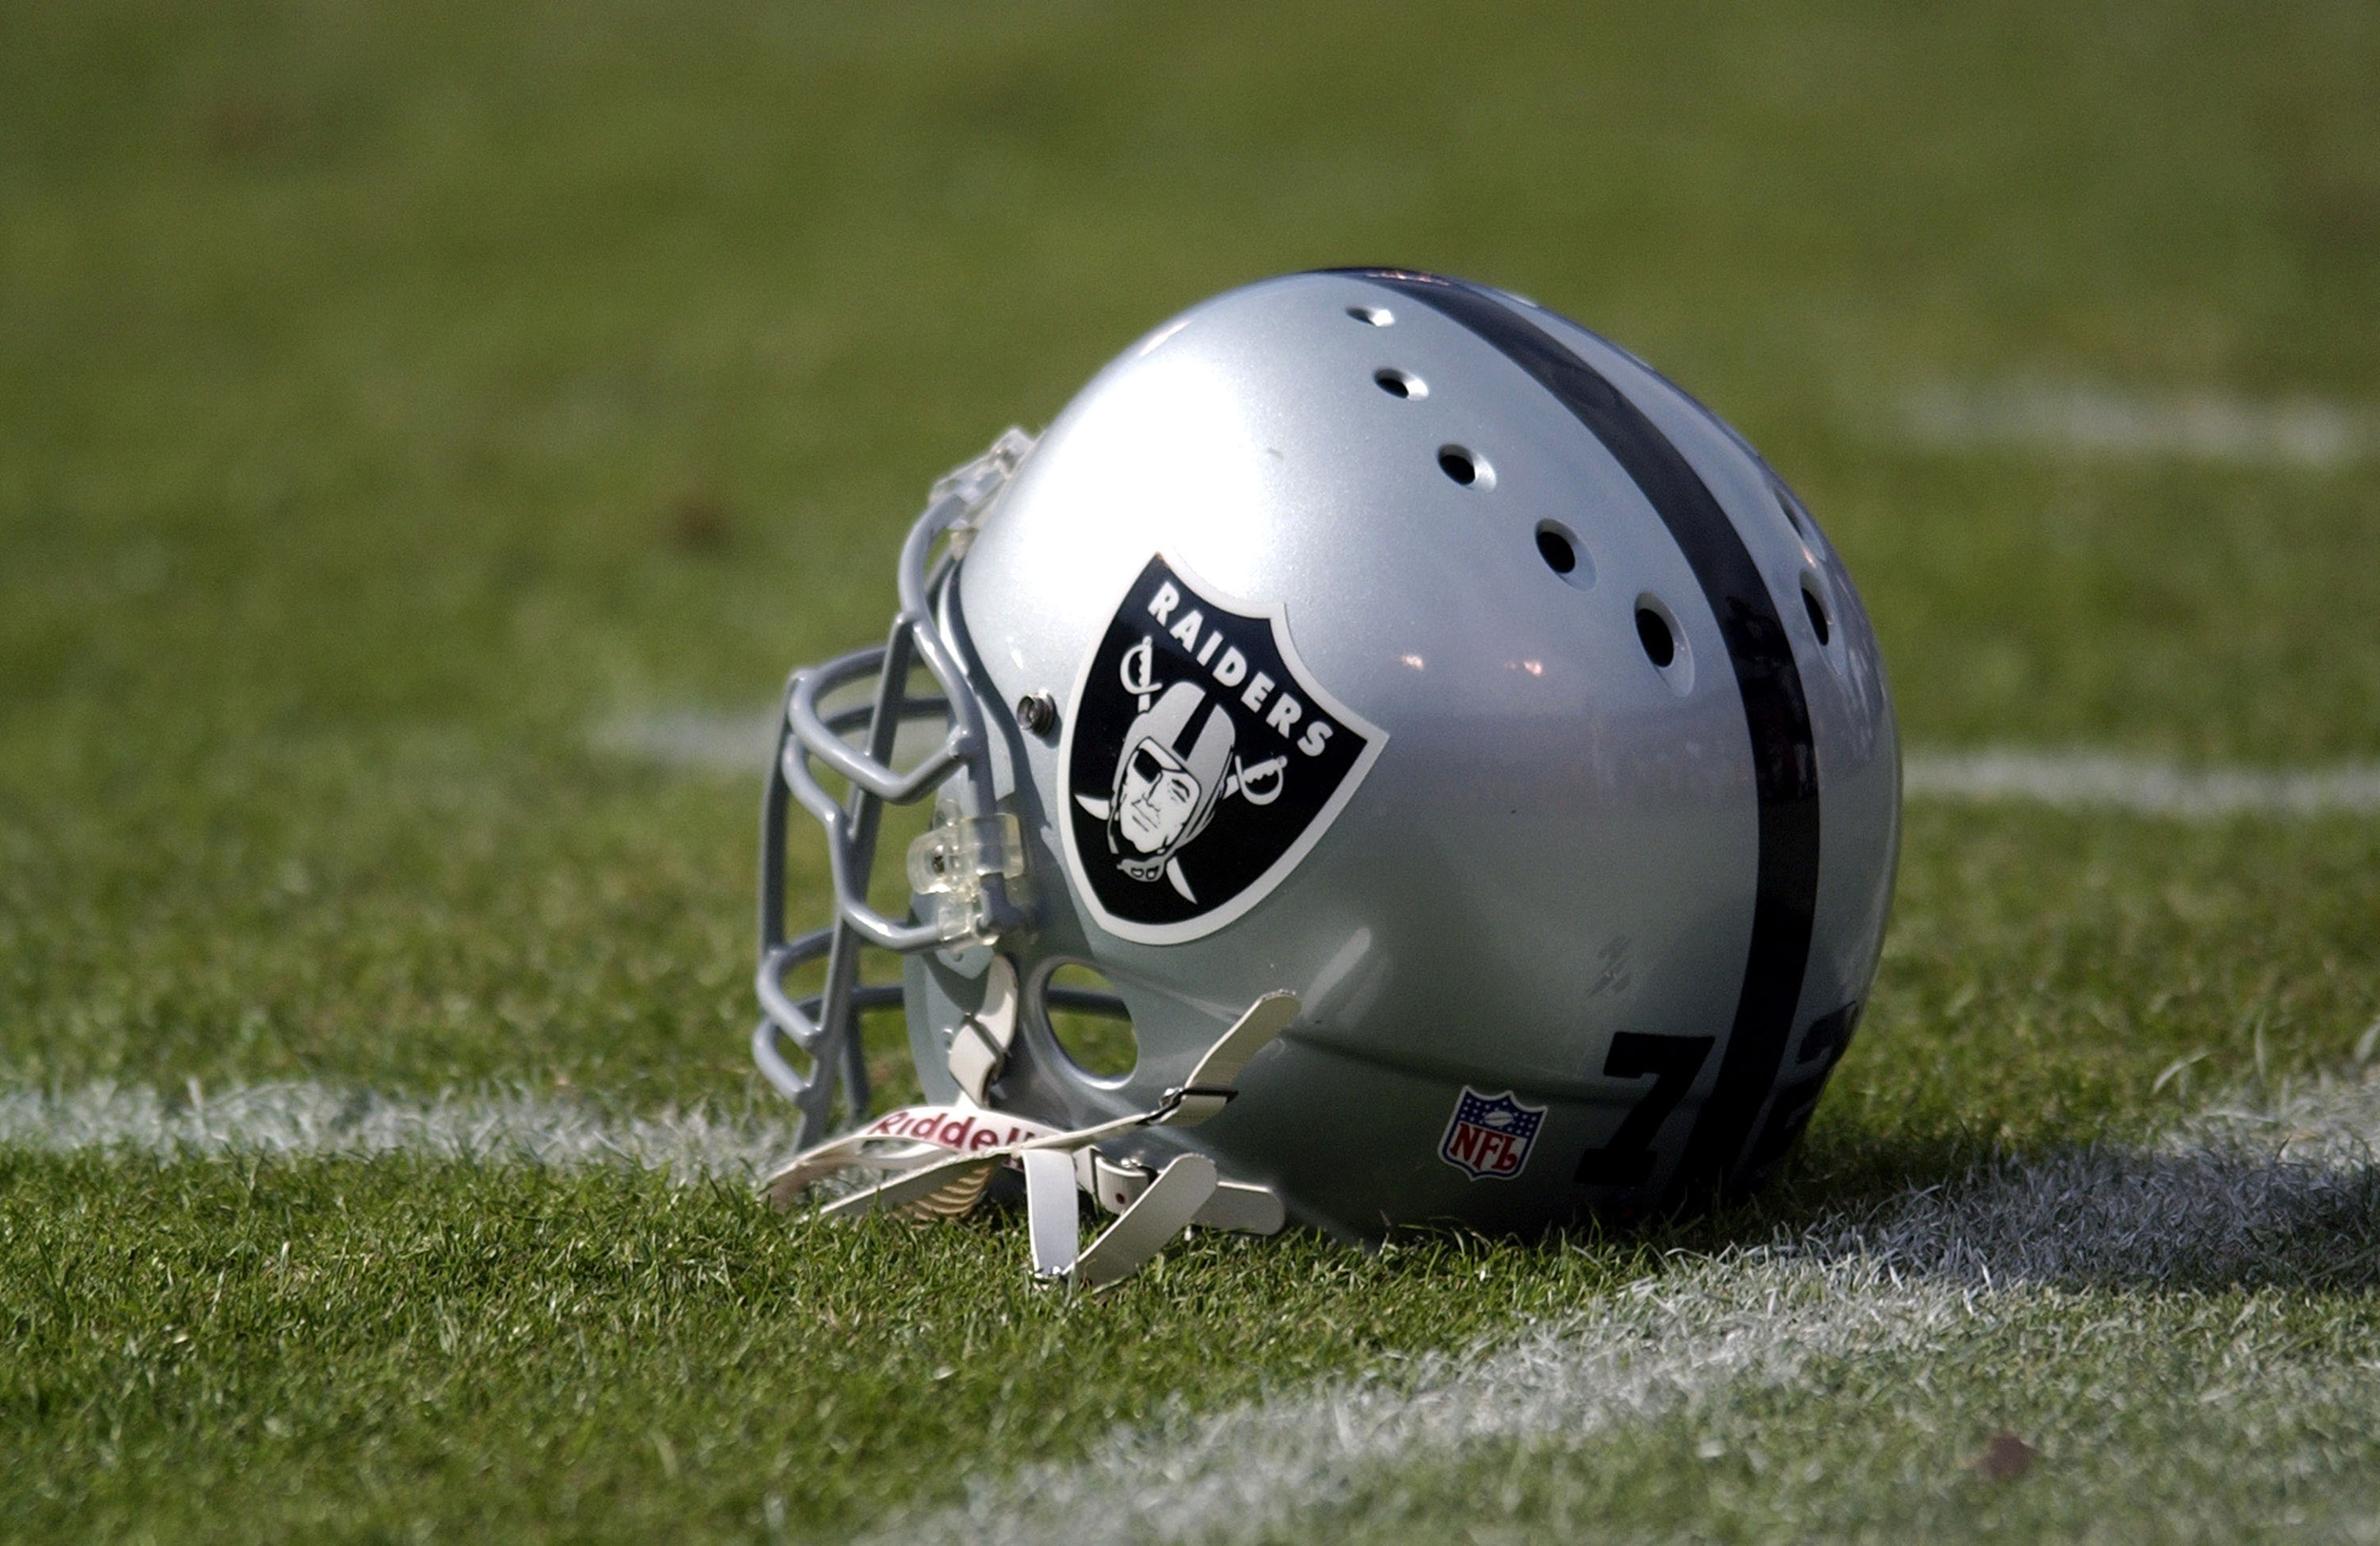 Oakland Raiders helmet on the sidelines. The 49ers defeated the Raiders, 14-10, in the NFL preseason game at 3COM Park in San Francisco, Calif. on August 14, 2003 .